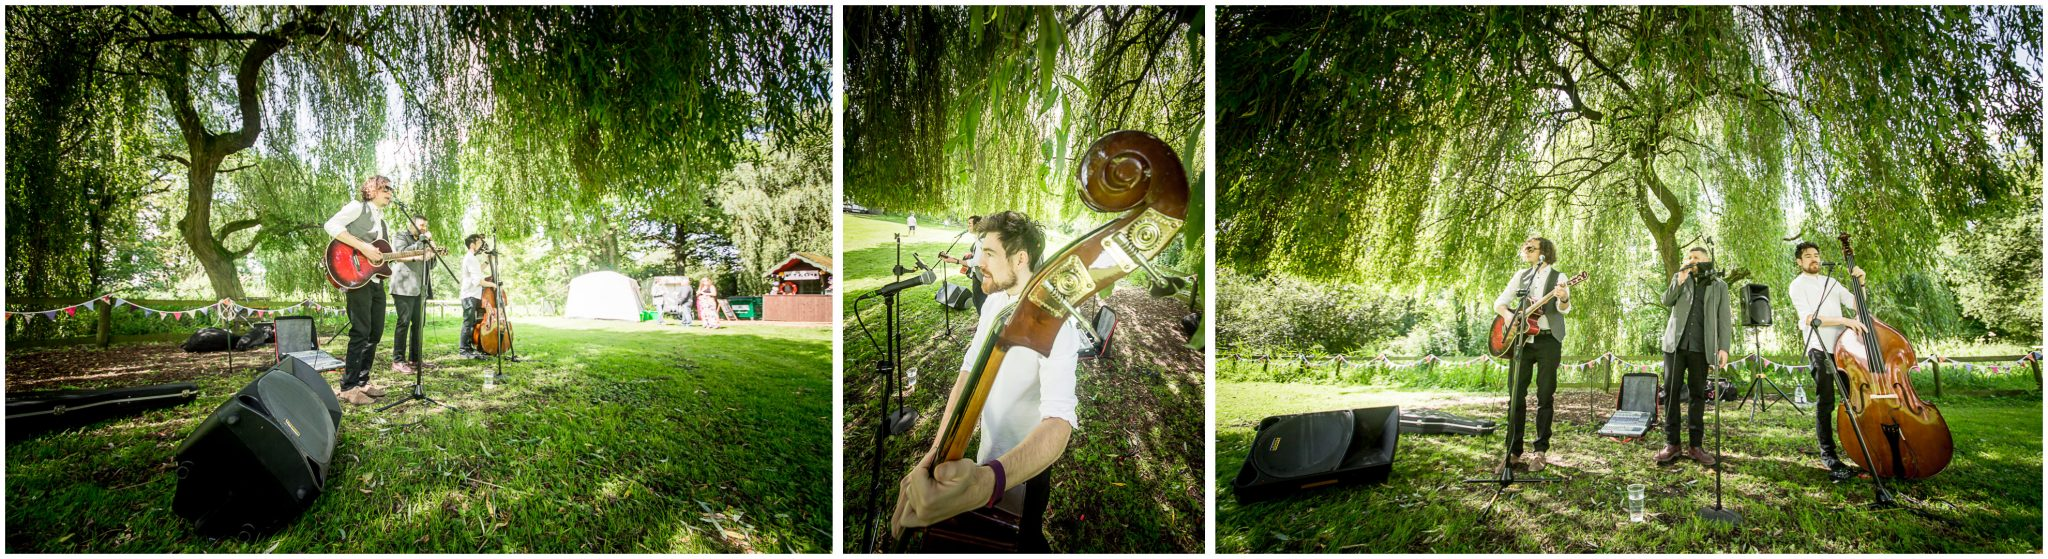 Timsbury Manor Festival Wedding live music under the trees